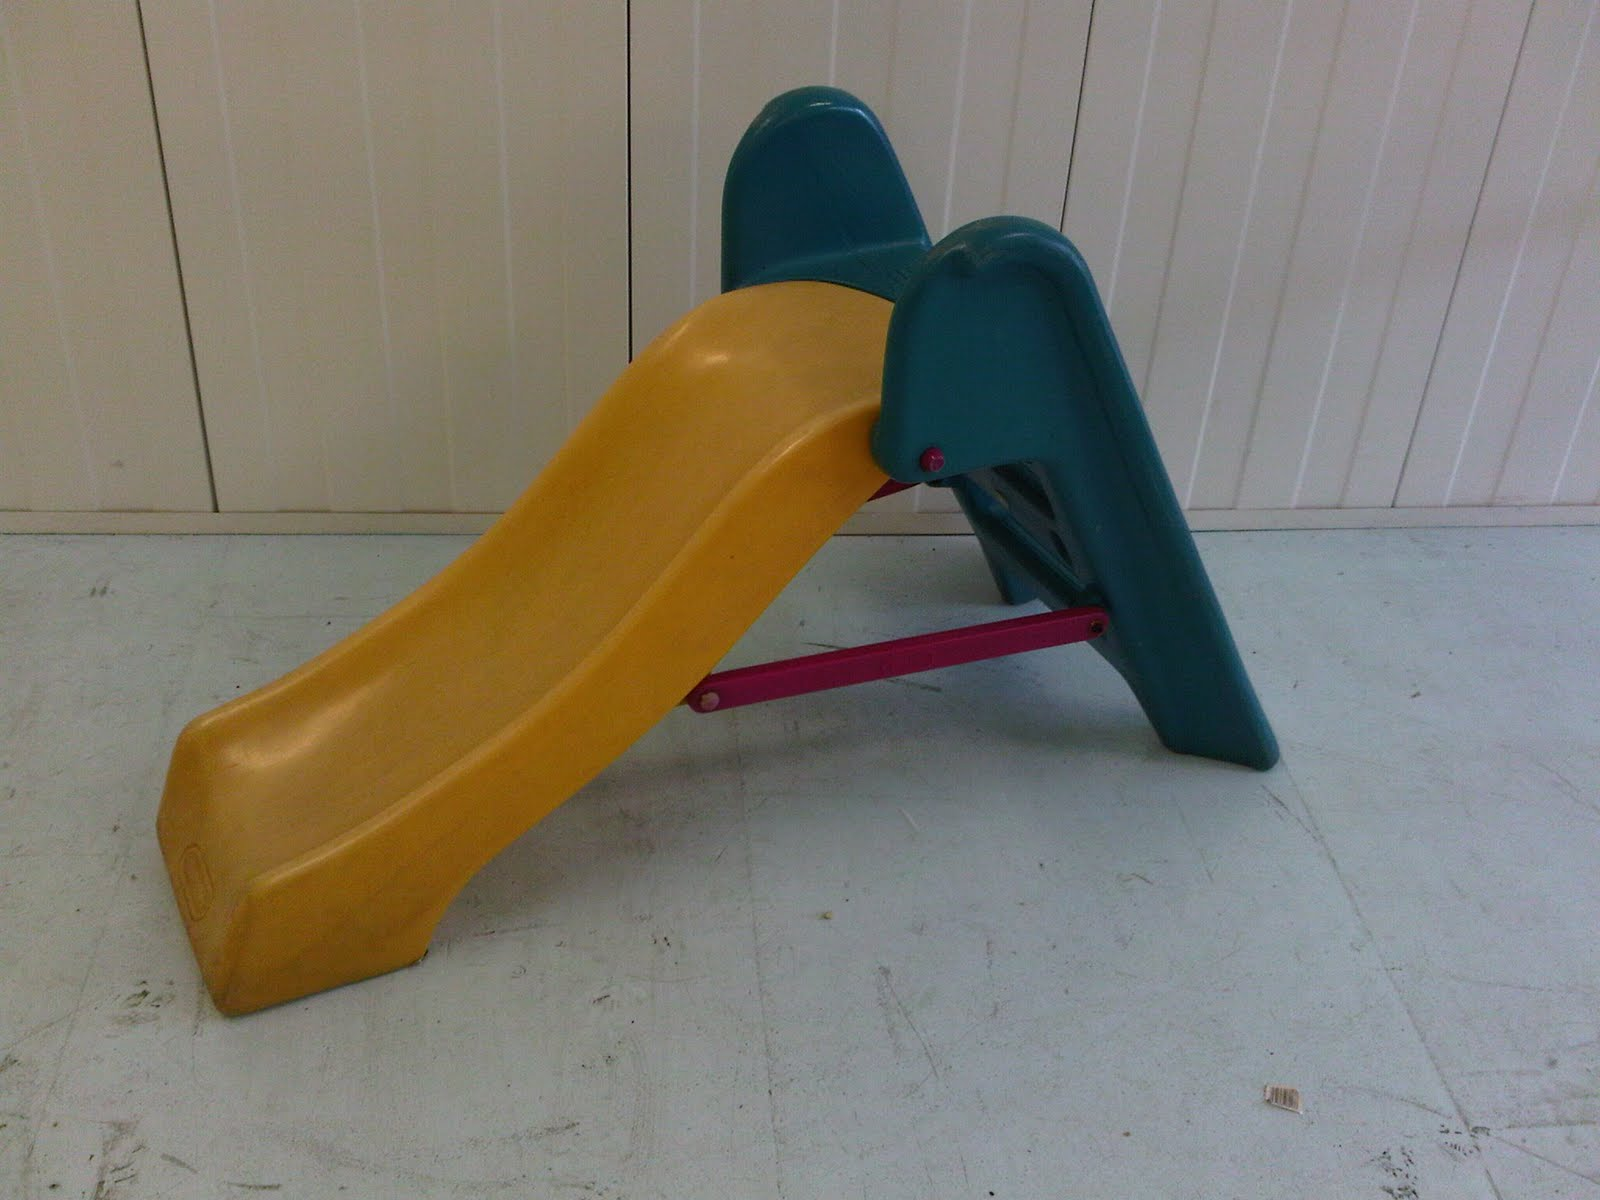 The Little Tikes junior slide is an ideal starter slide for your toddler. They will be eager to show you how well they can climb the stairs and whoosh down the slide!/5().